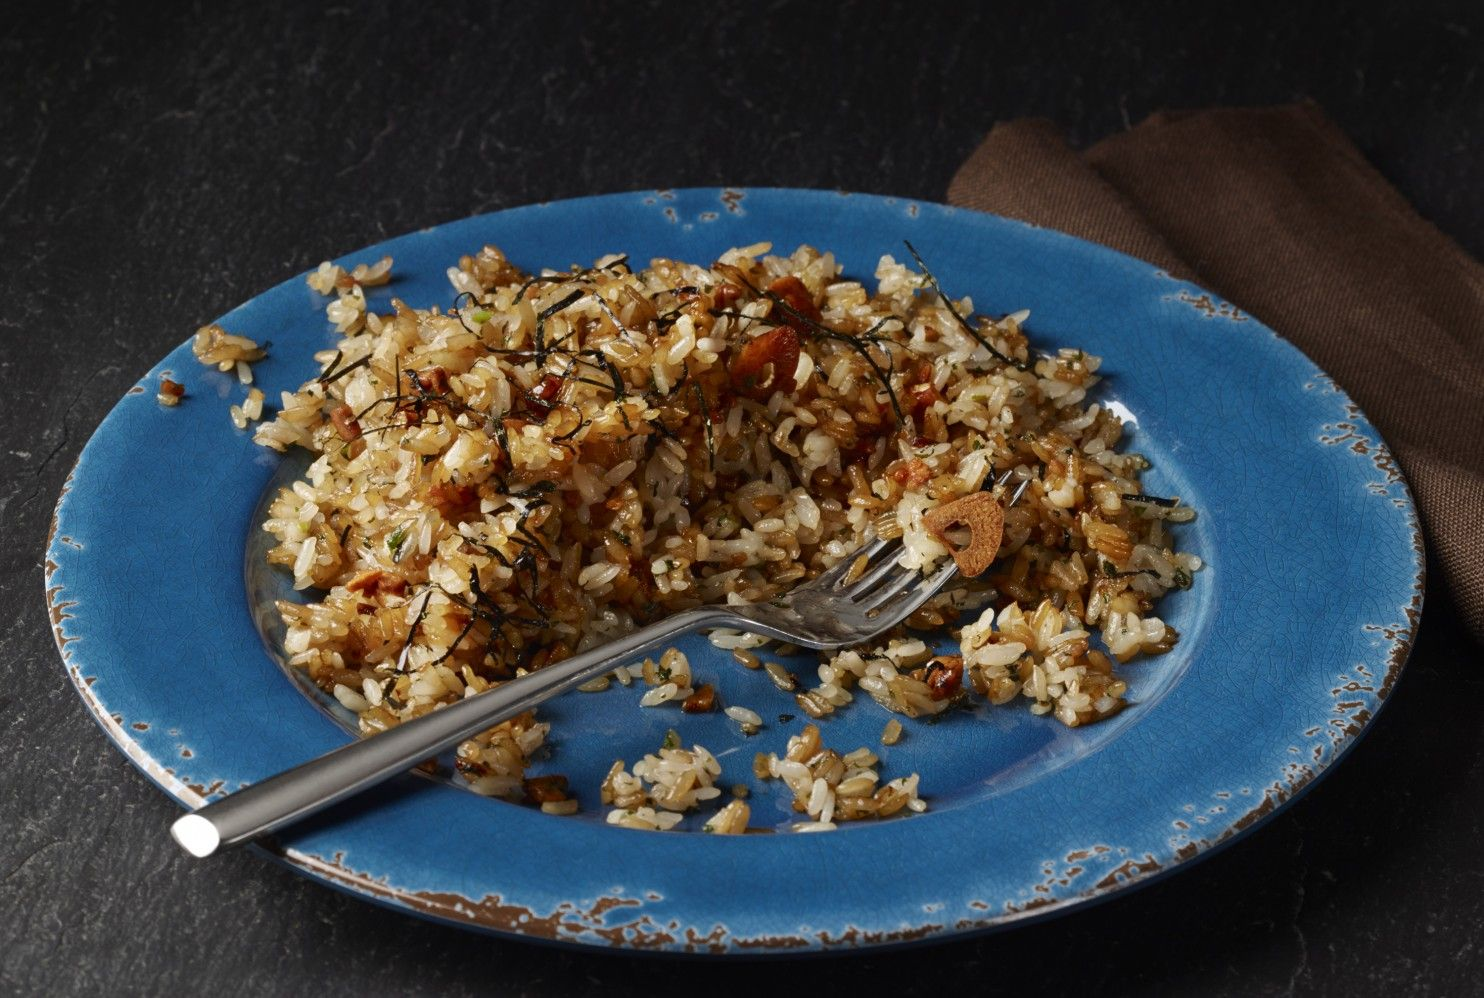 7 meatless ways to make rice the main event recipe finder garlic 7 meatless ways to make rice the main event forumfinder Gallery